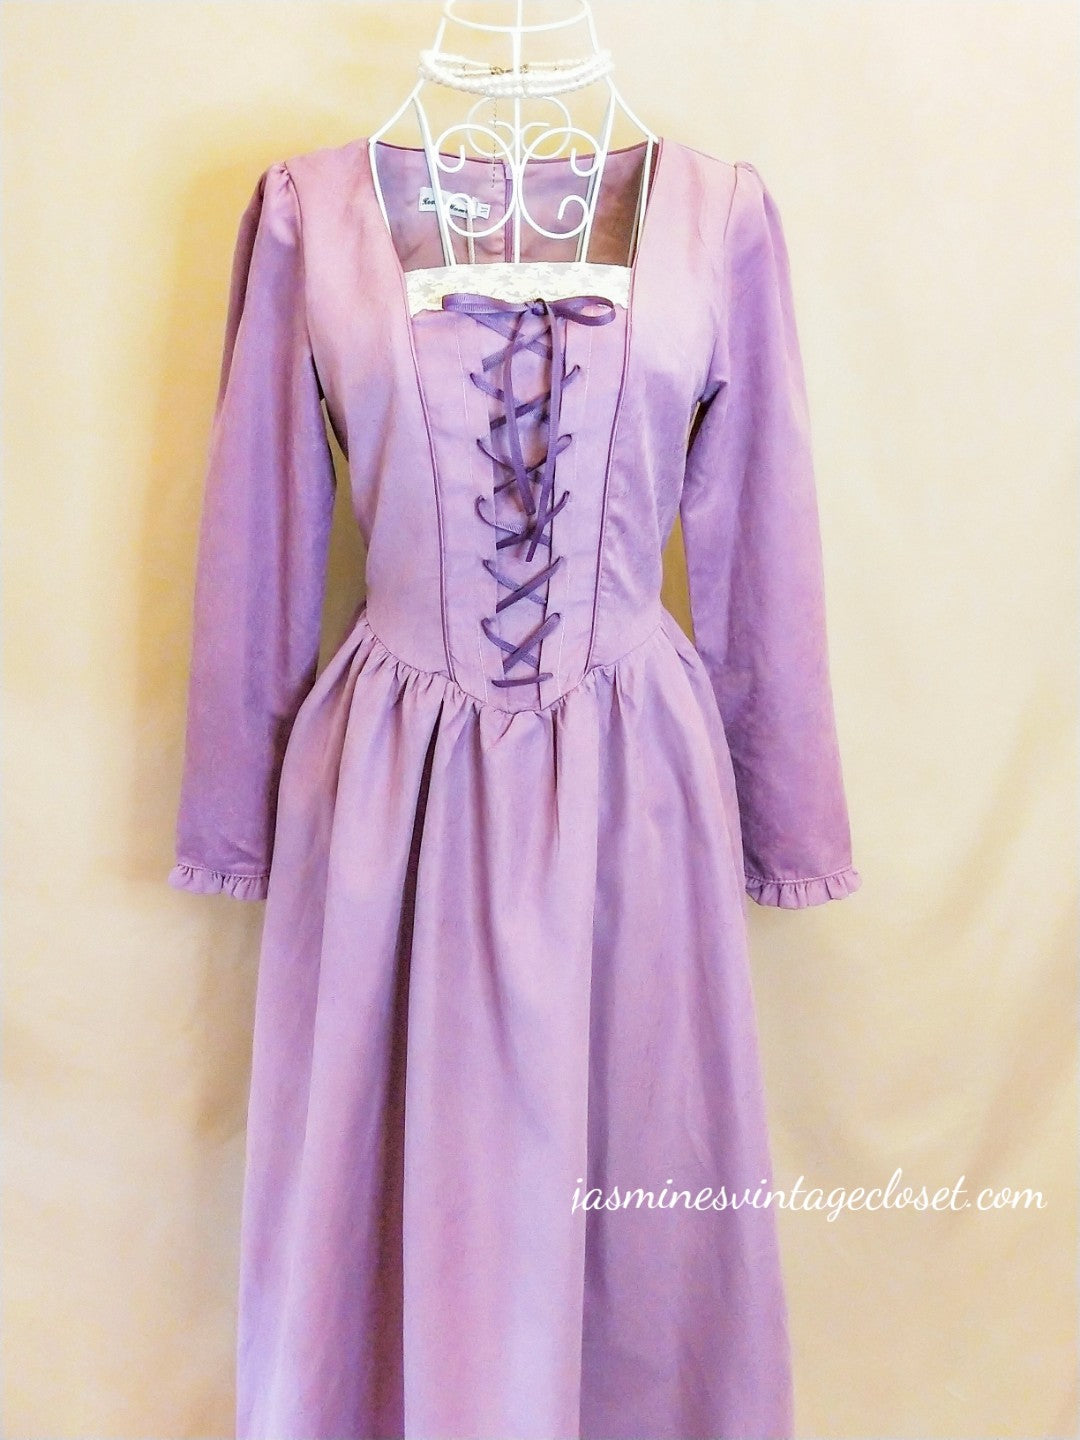 Rapunzel's Dress